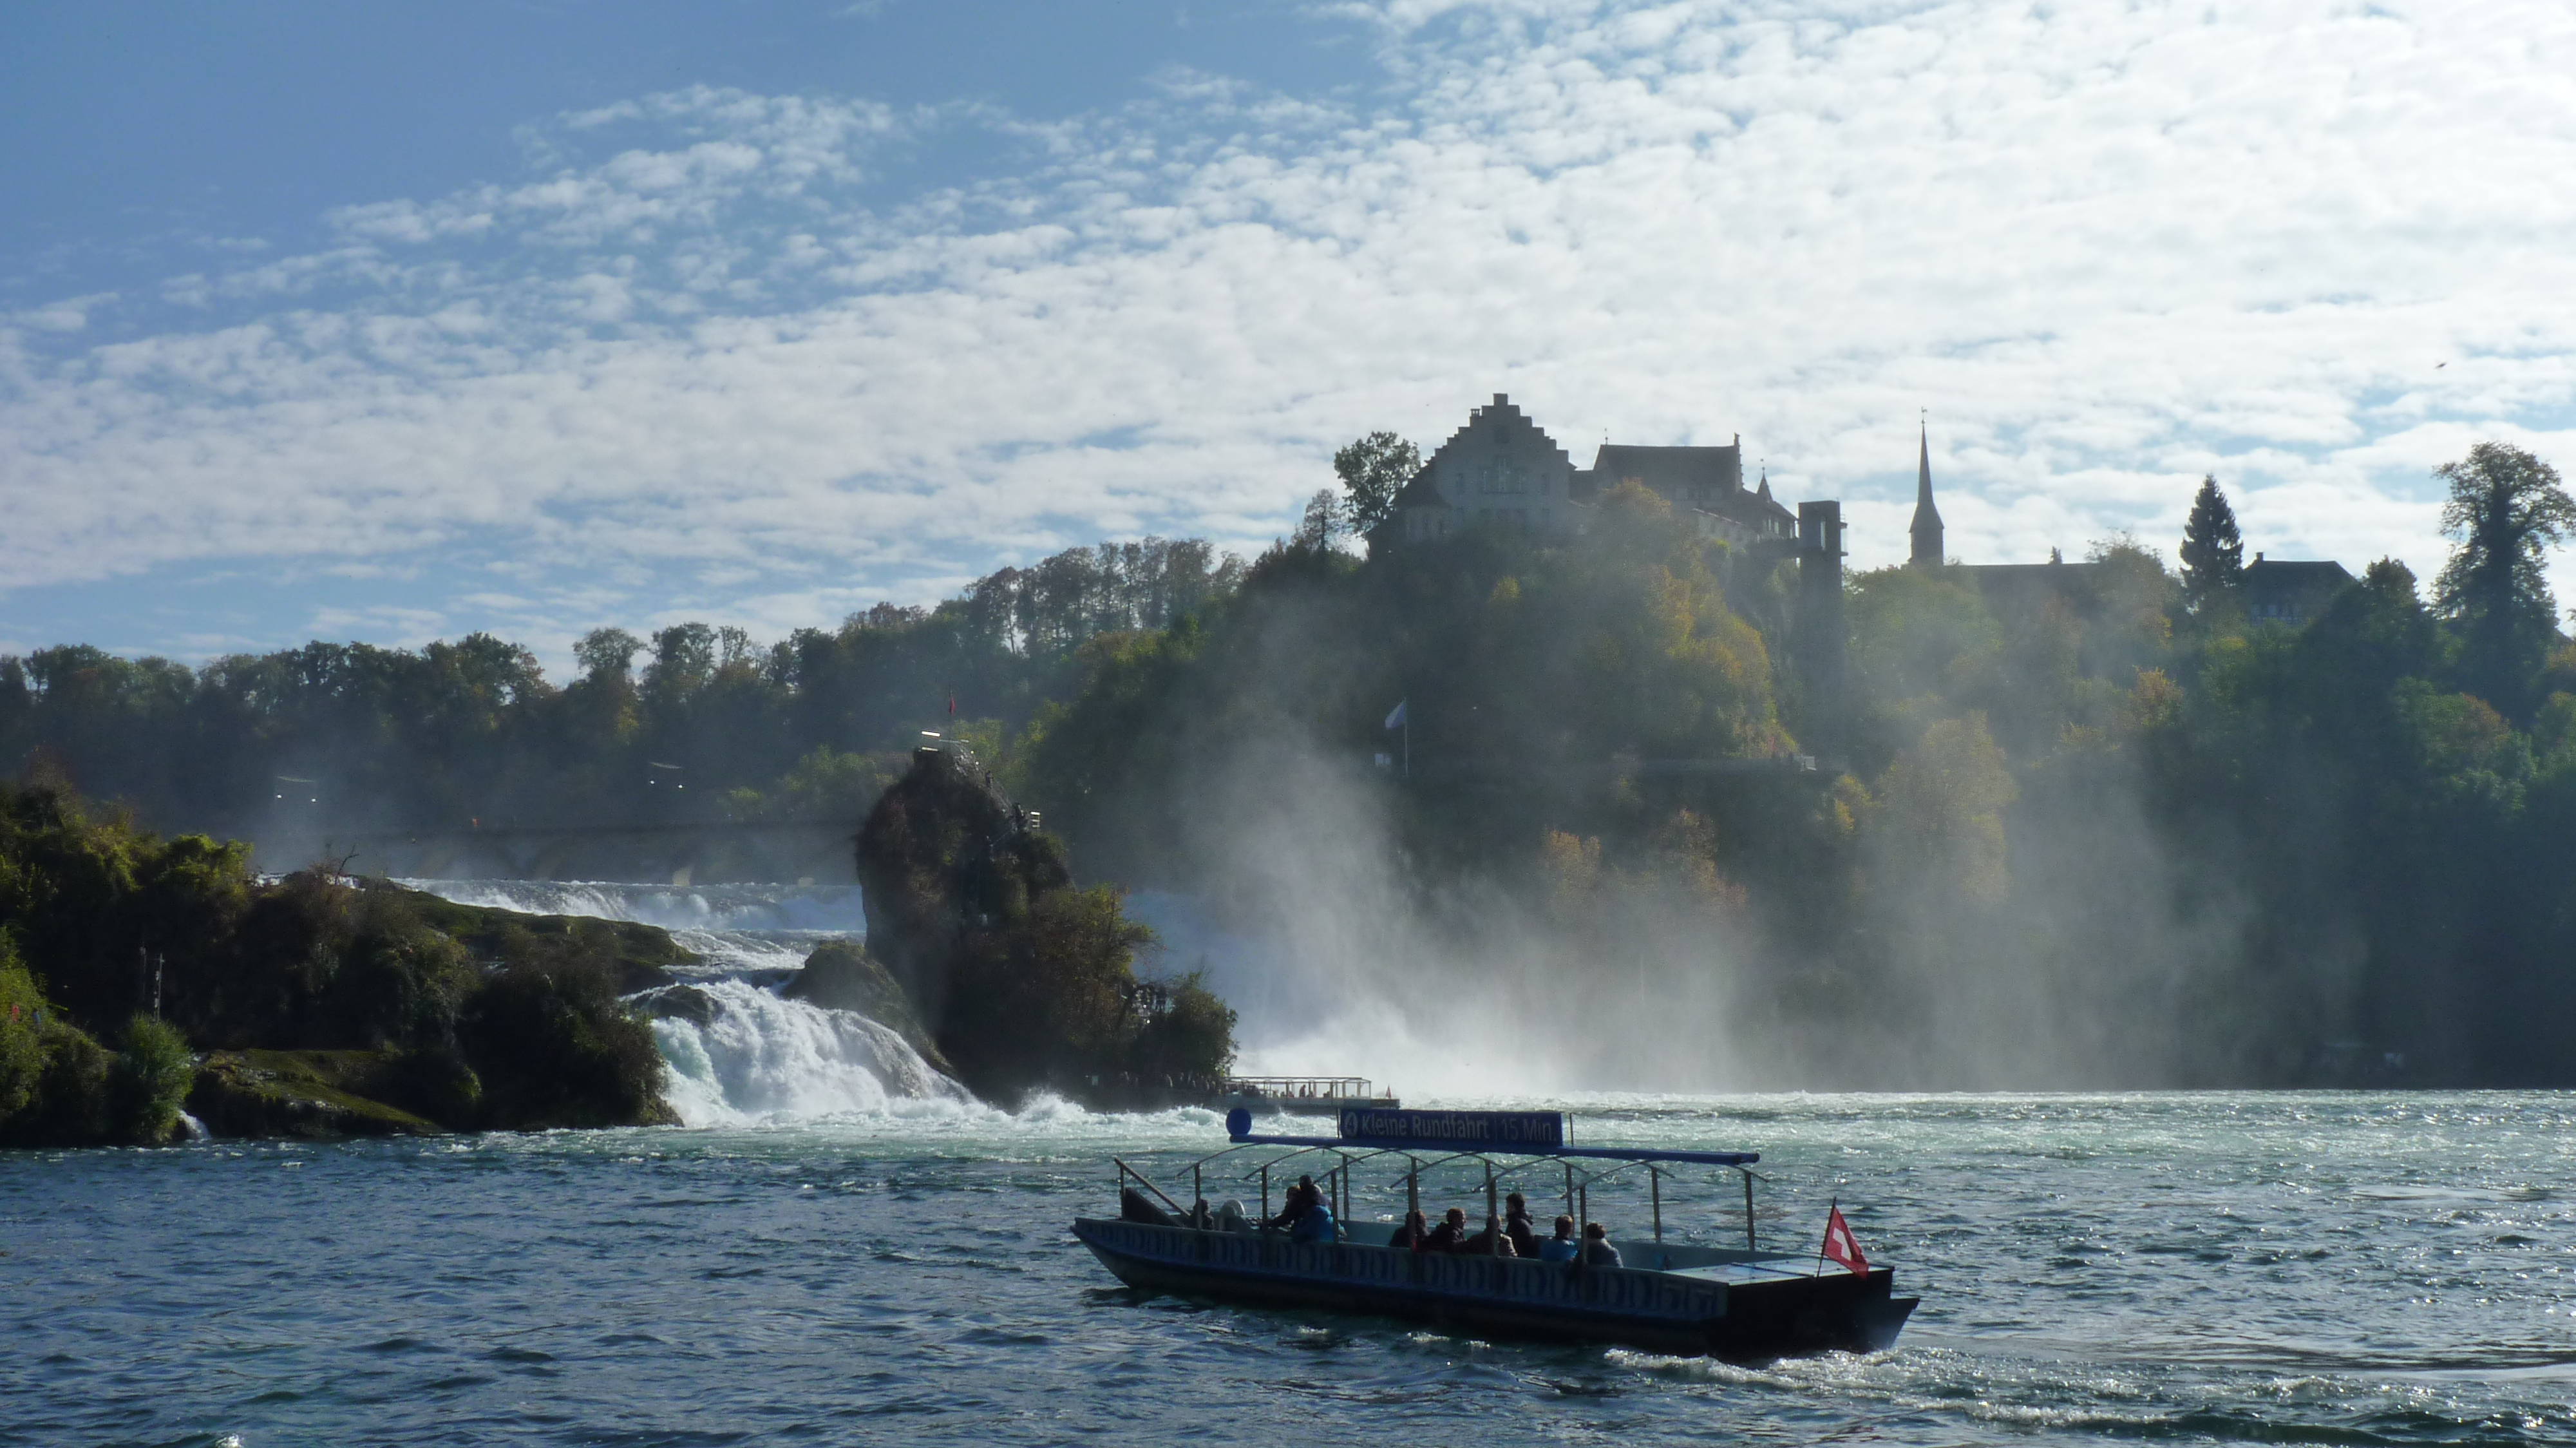 View from the Rhine river bank on the Falls and Laufen's castle